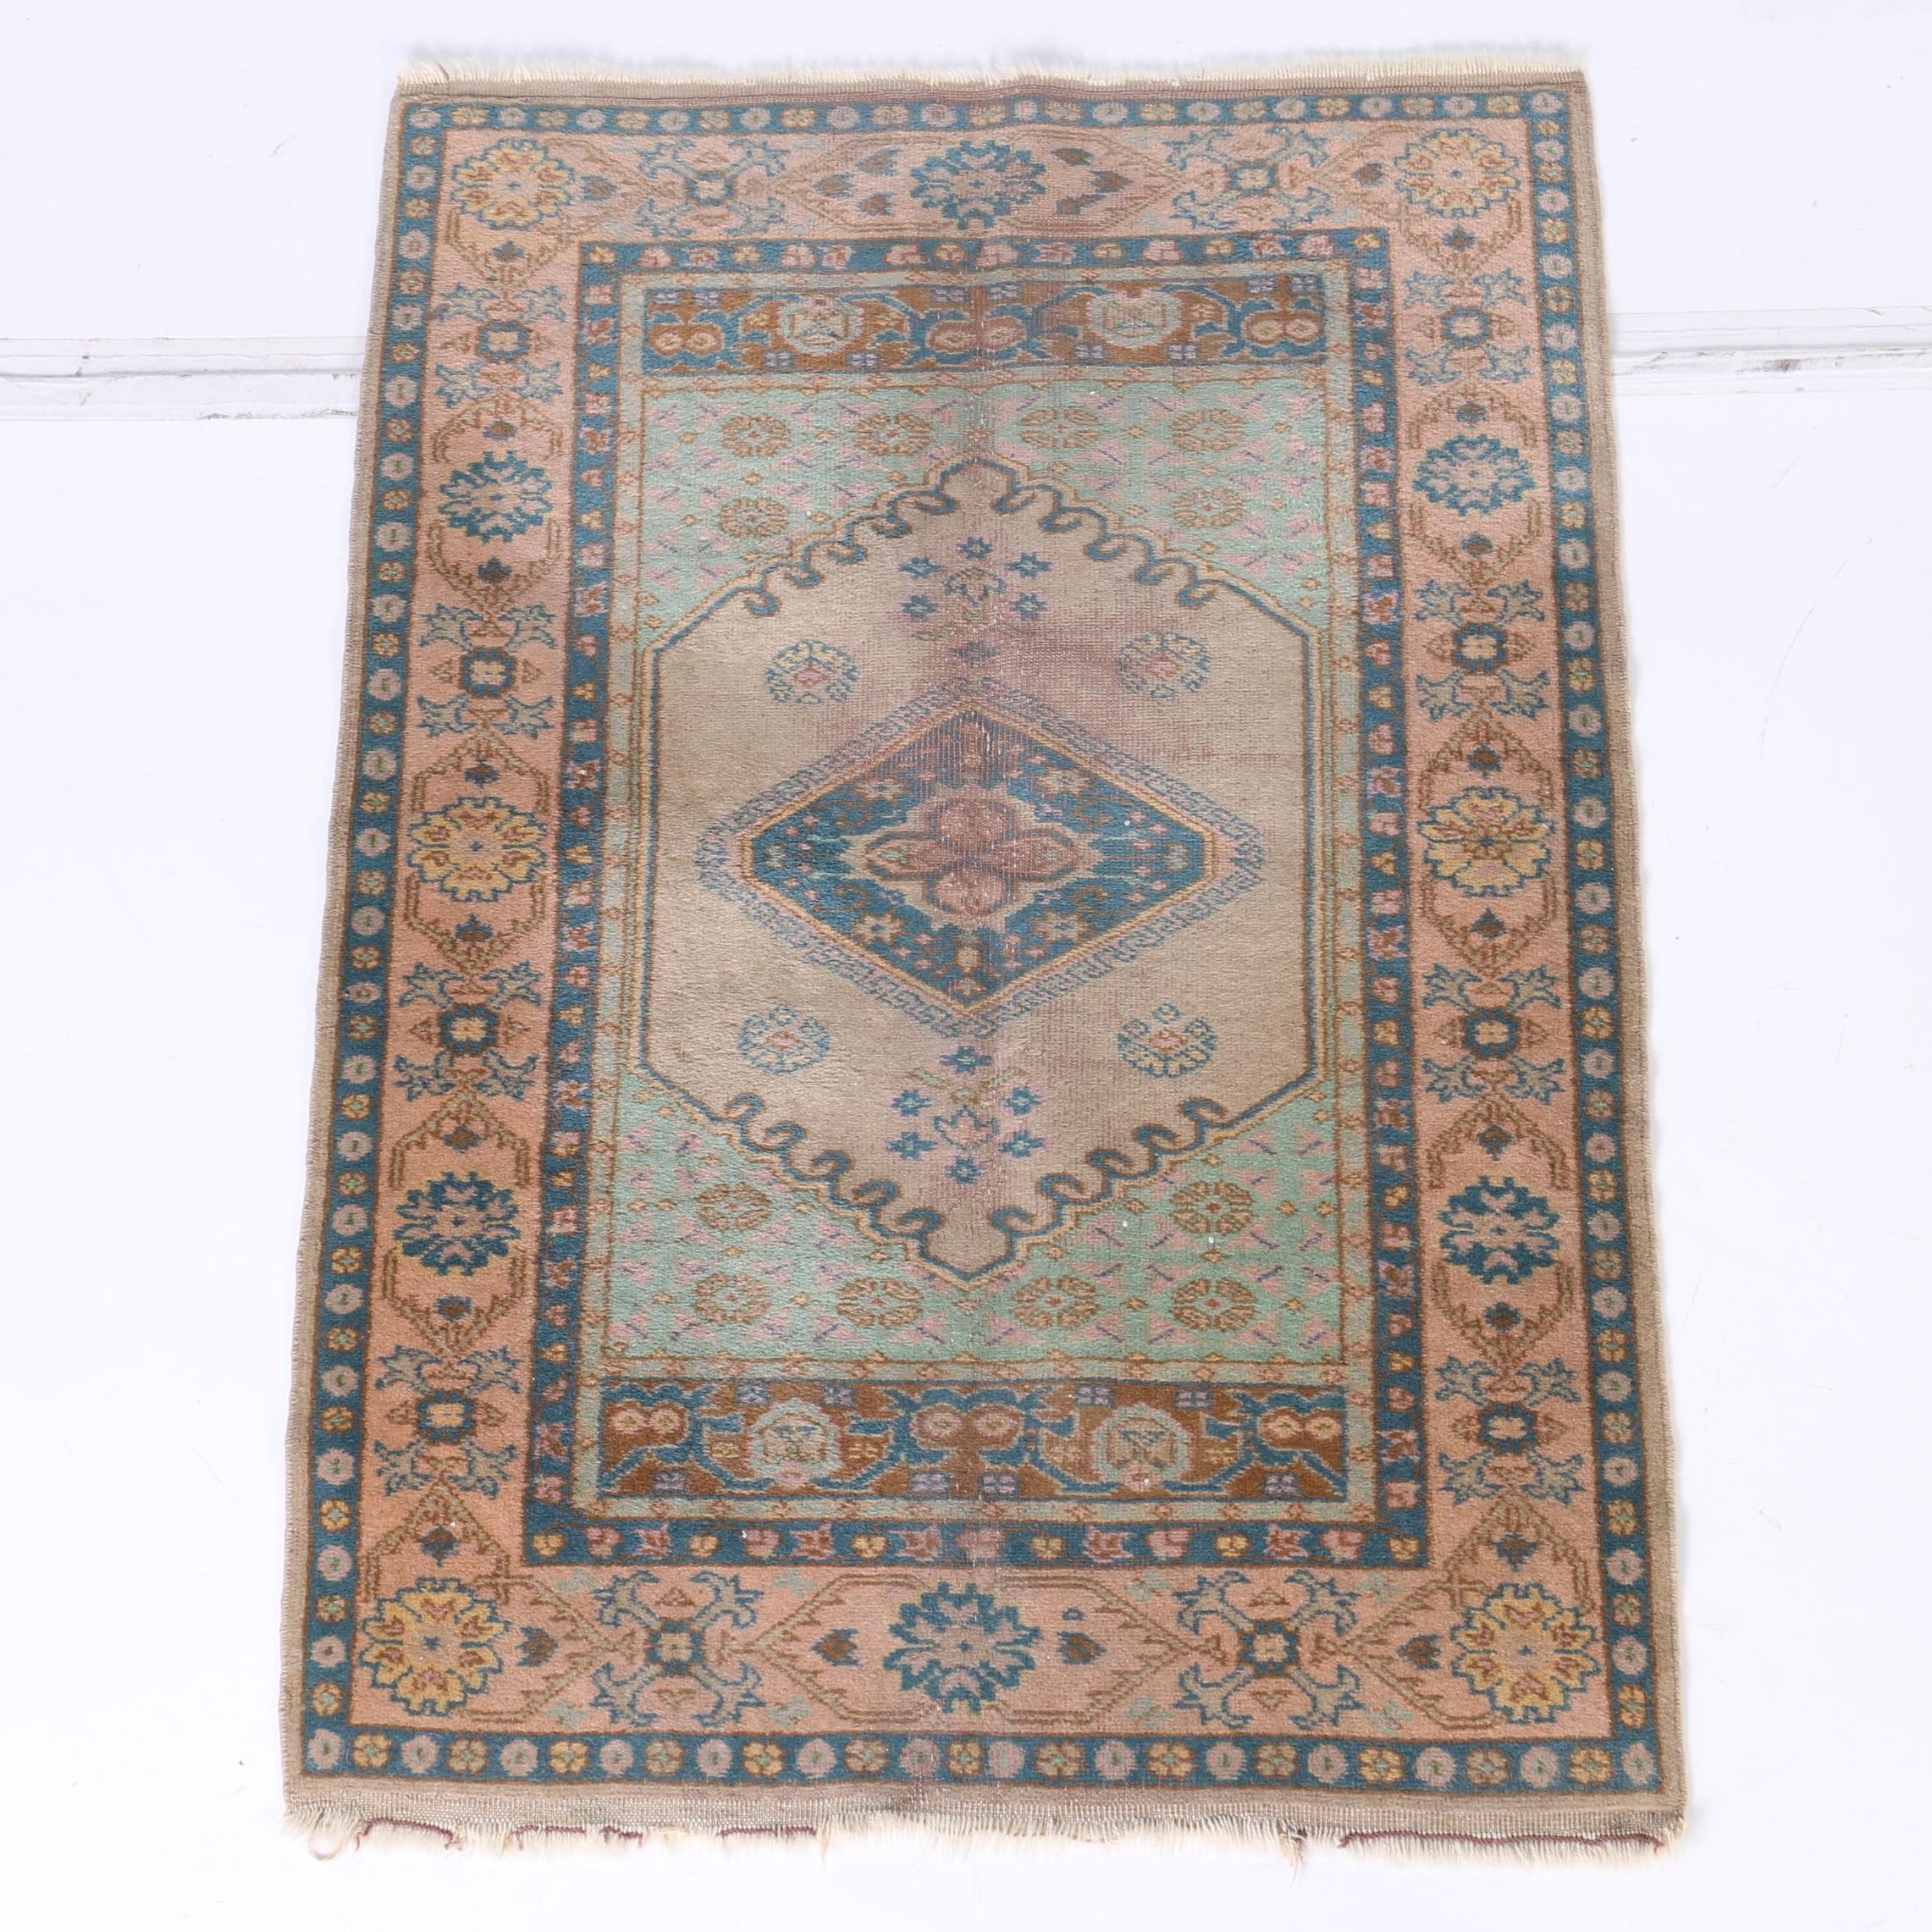 Vintage Hand-Knotted Persian Inspired Accent Rug